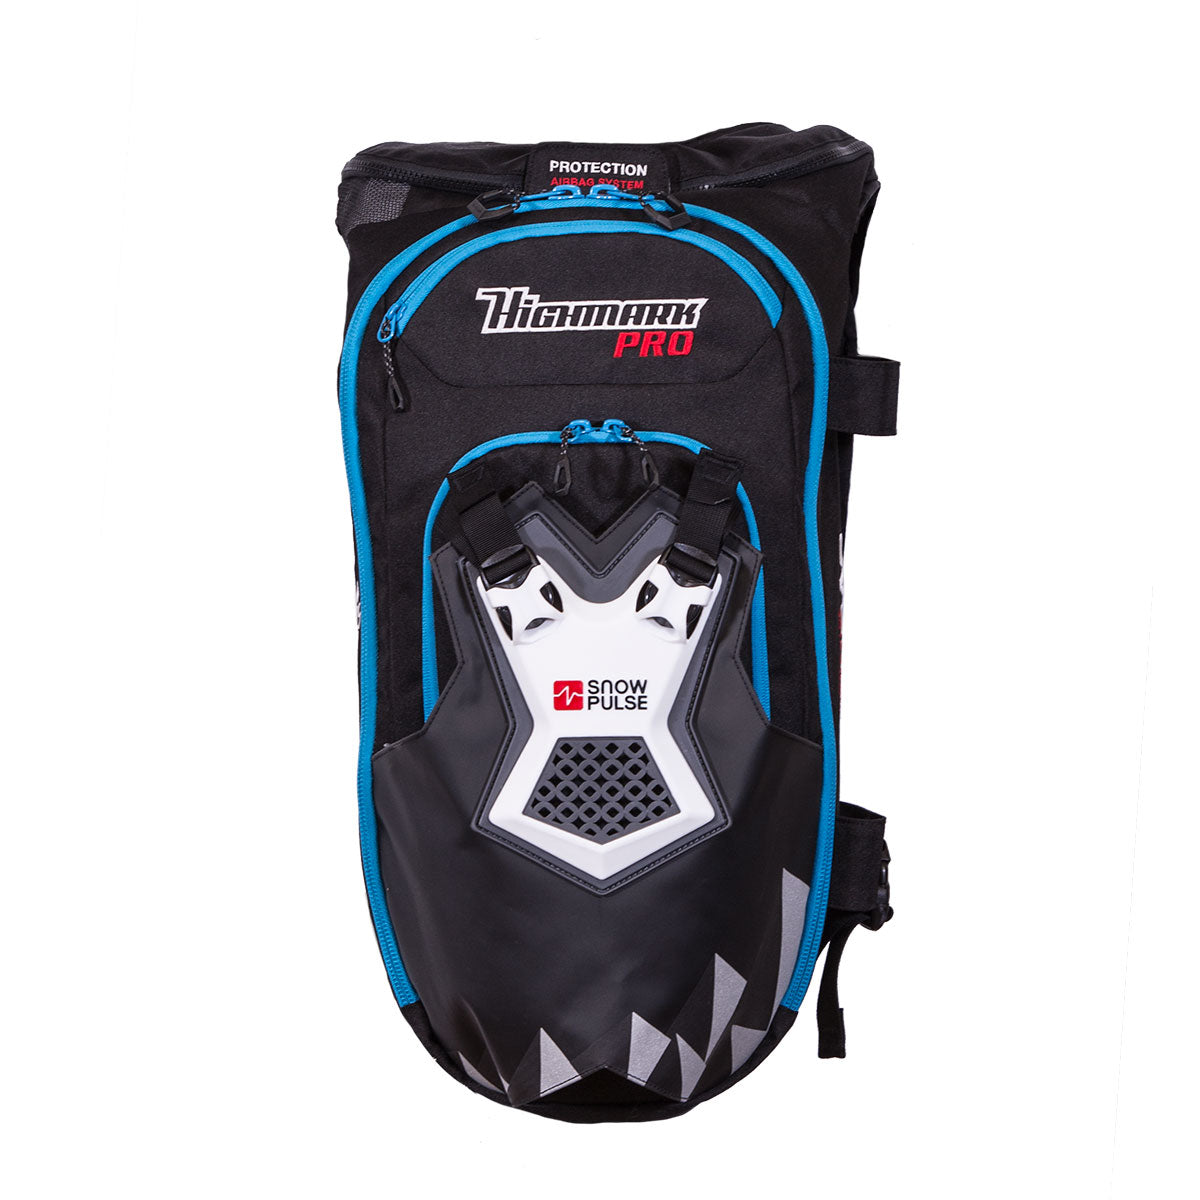 Highmark Pro 3.0 PAS Avalanche Airbag